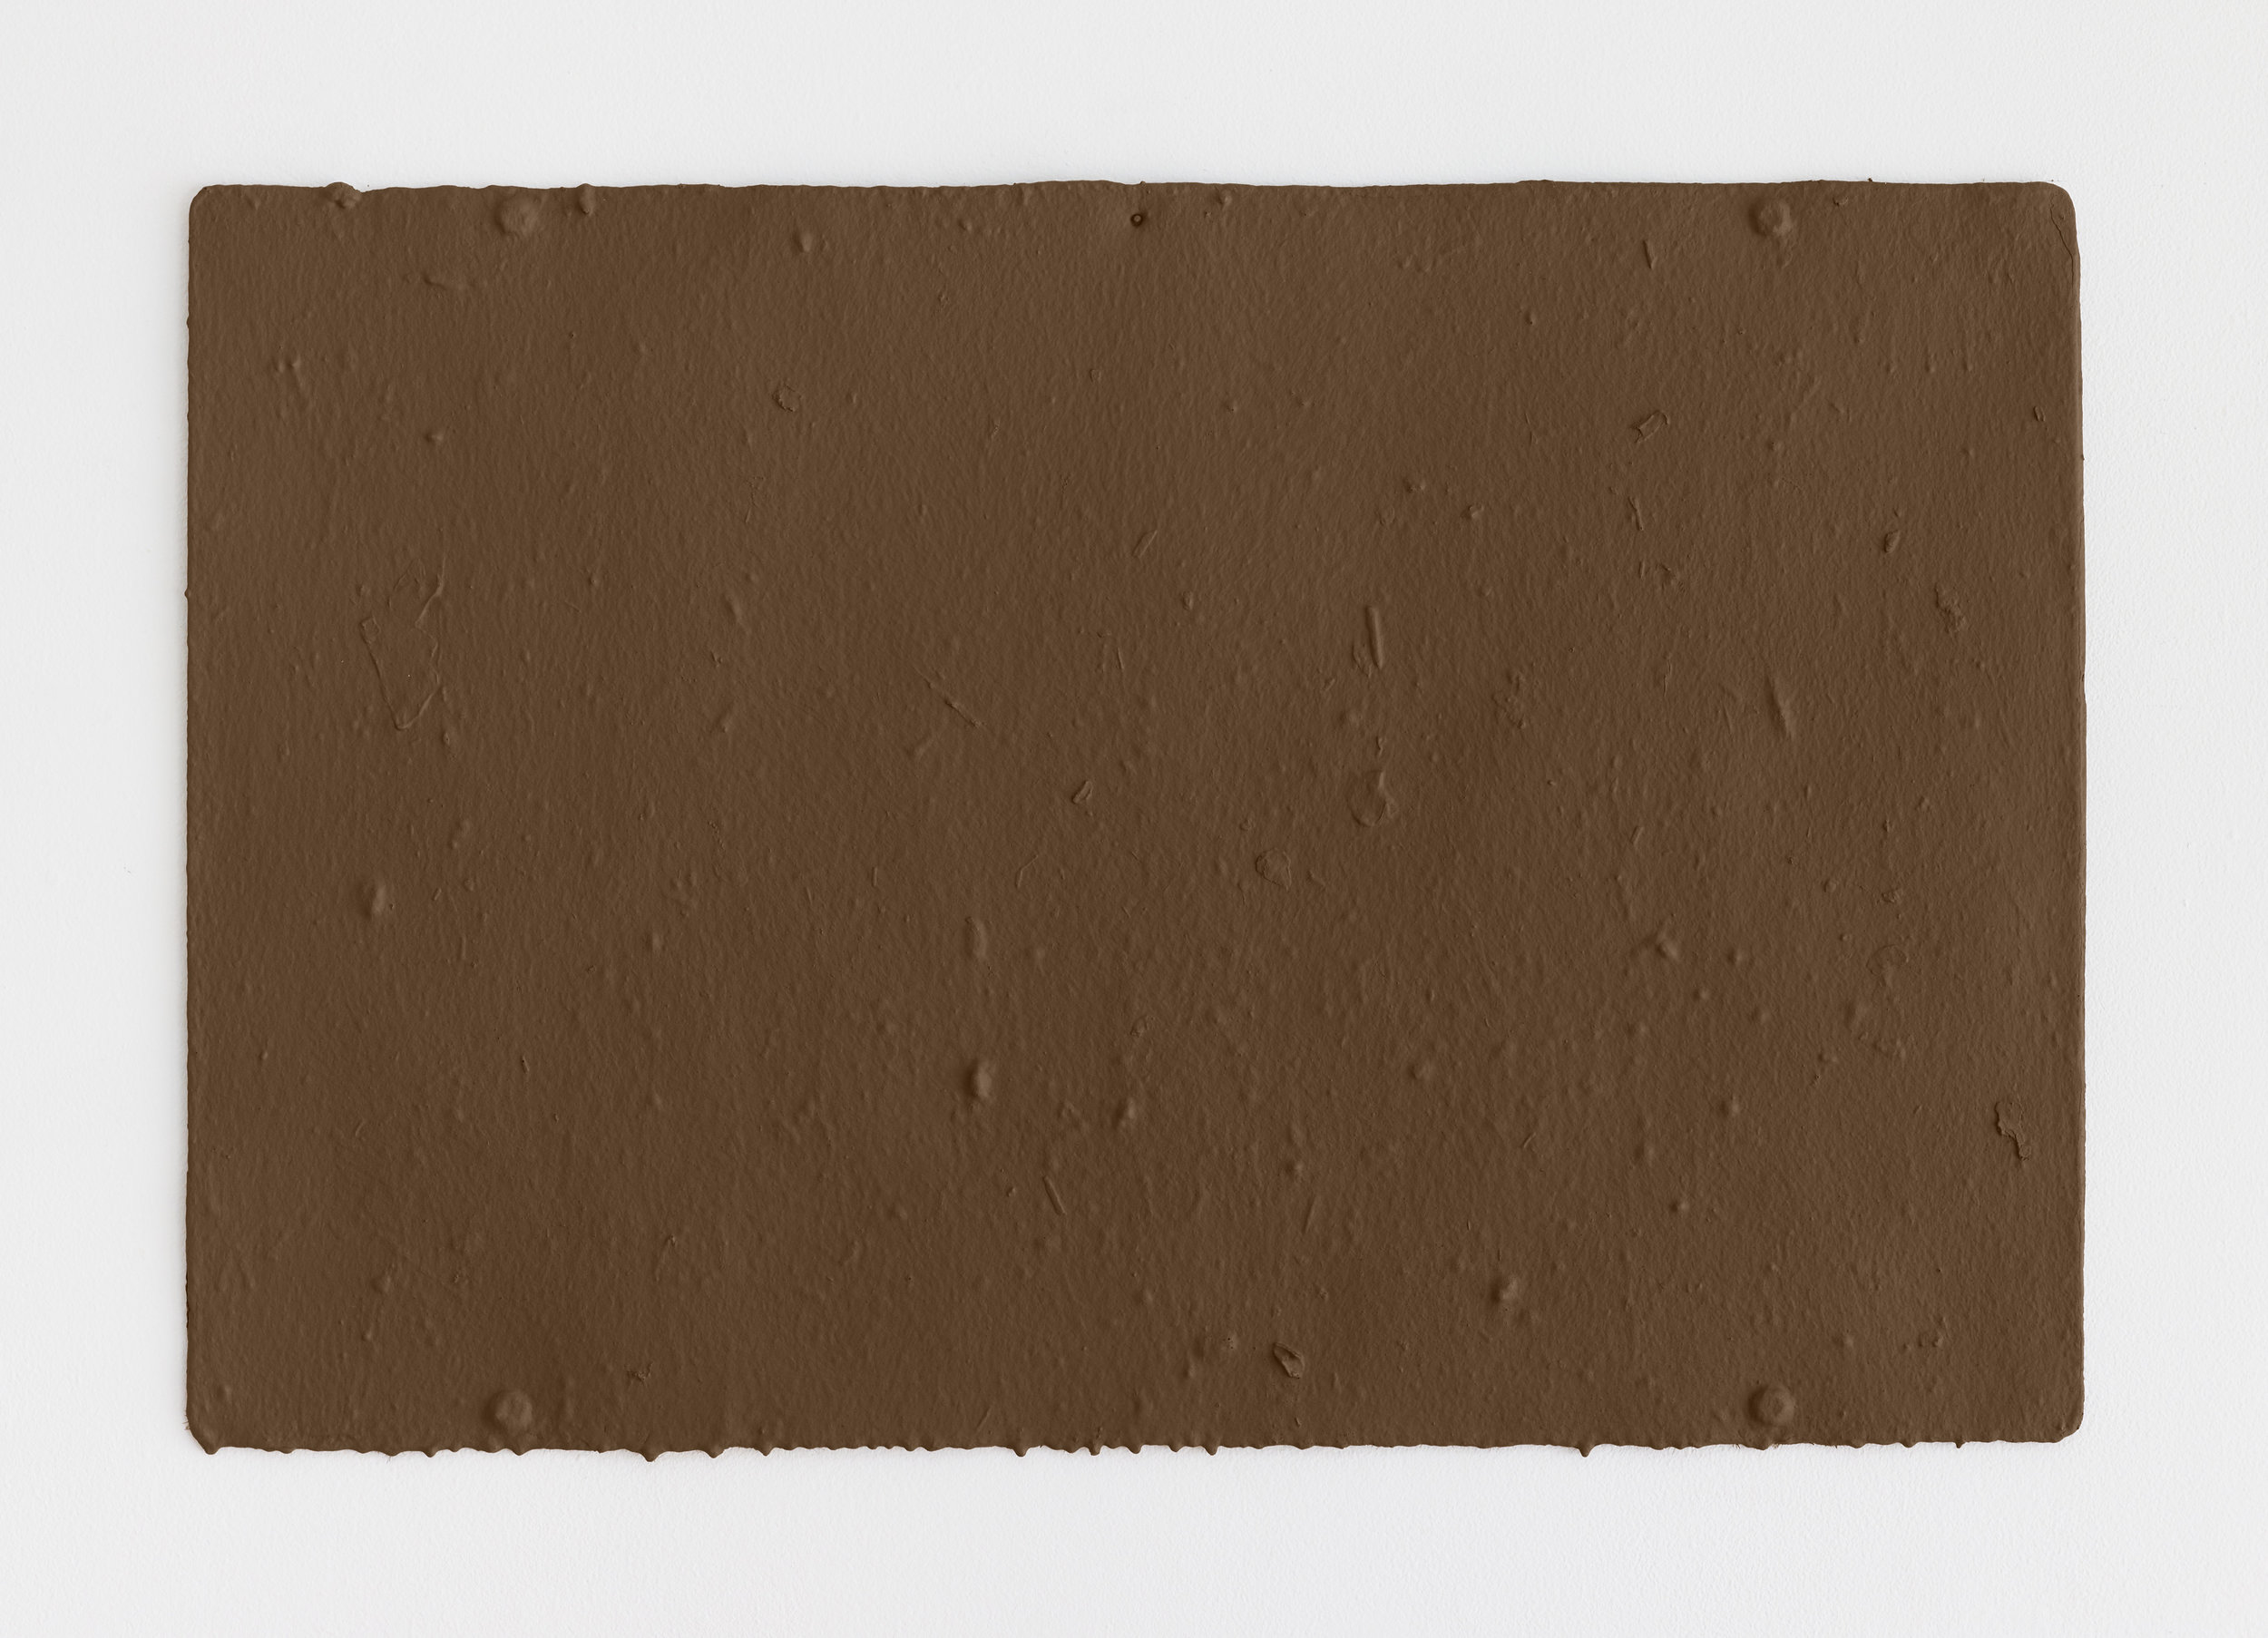 Fiona Connor, Untitled #15 (5230 Santa Monica Blvd, Los Angeles, CA 90029), 2018. Cast resin, brown acrylic paint.